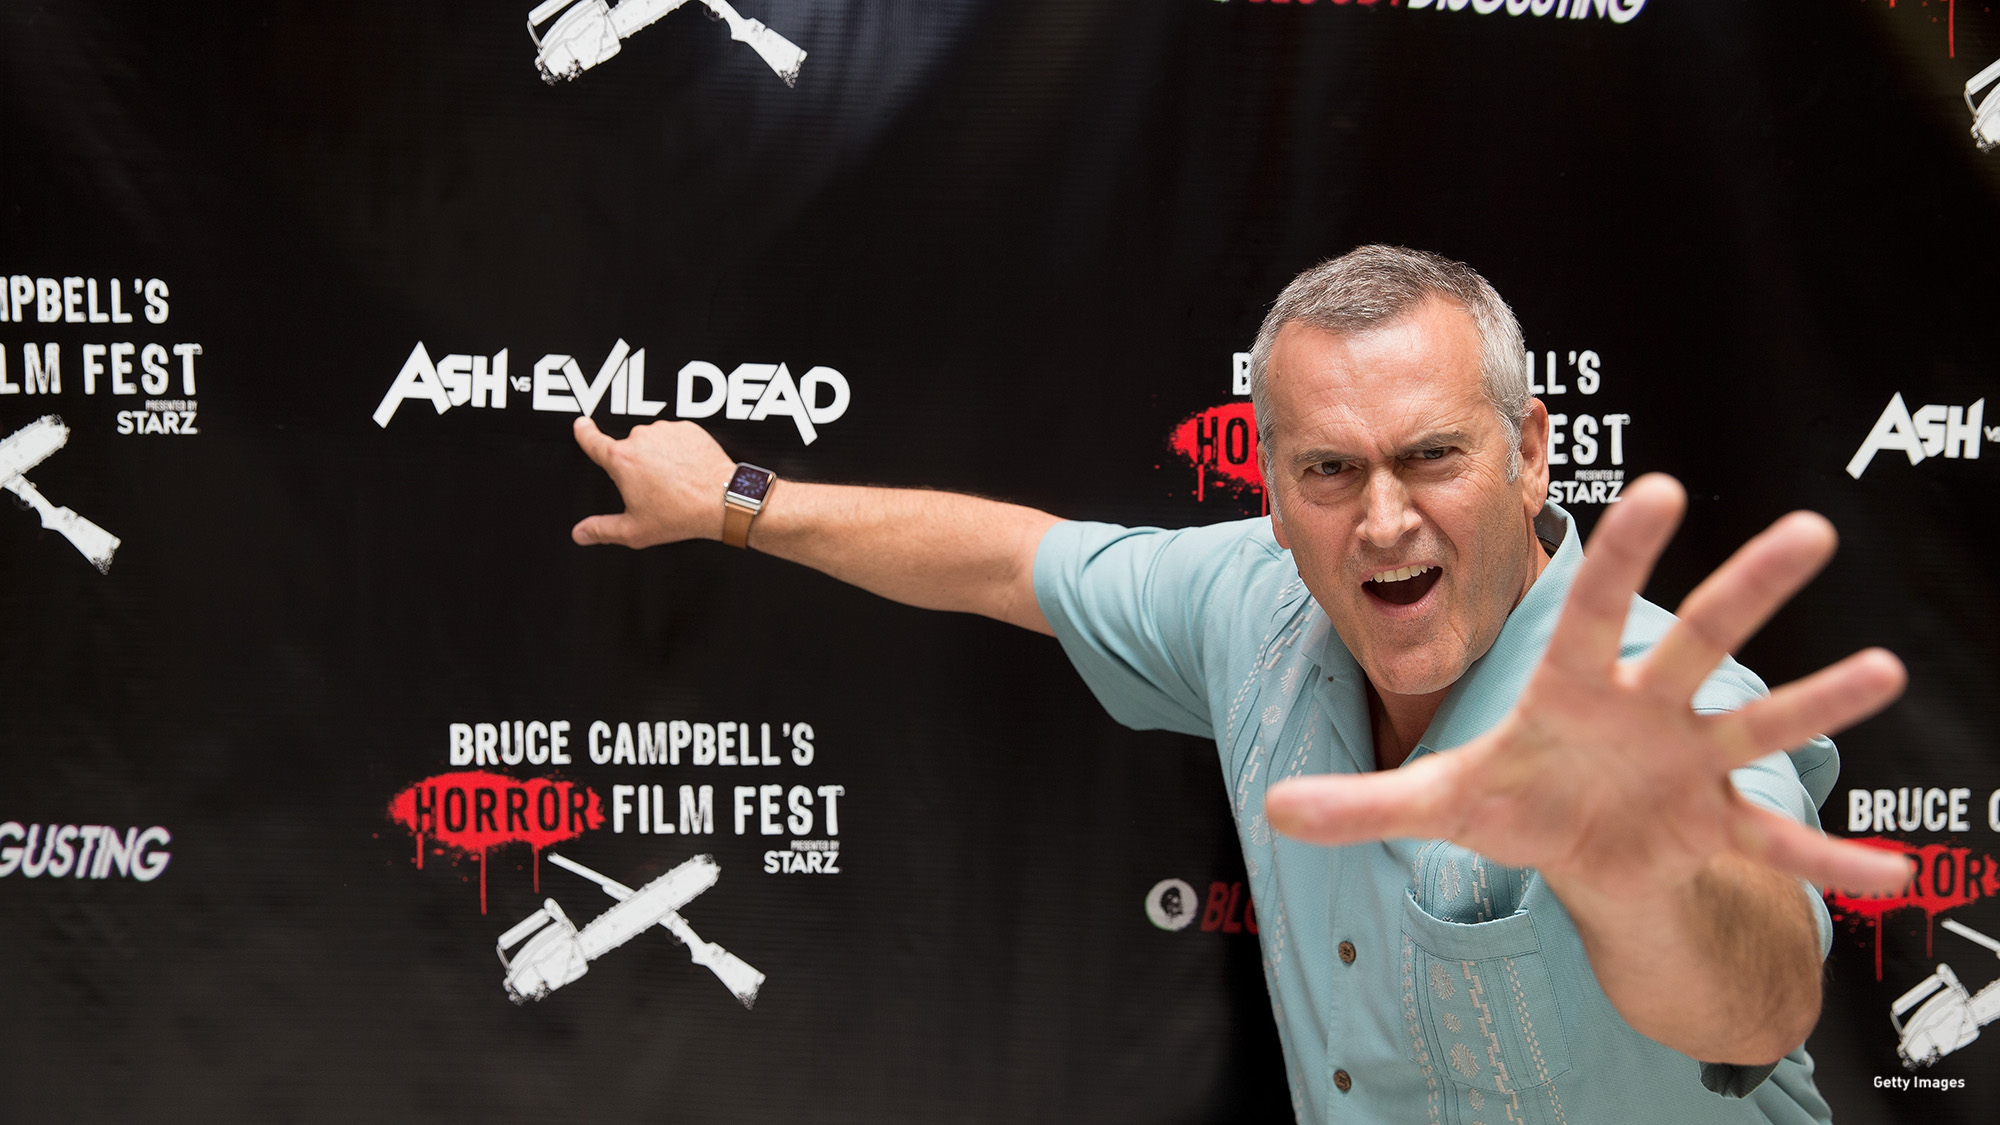 Bruce Campbell: Hail to the Chin: Further Confessions of a B Movie Actor